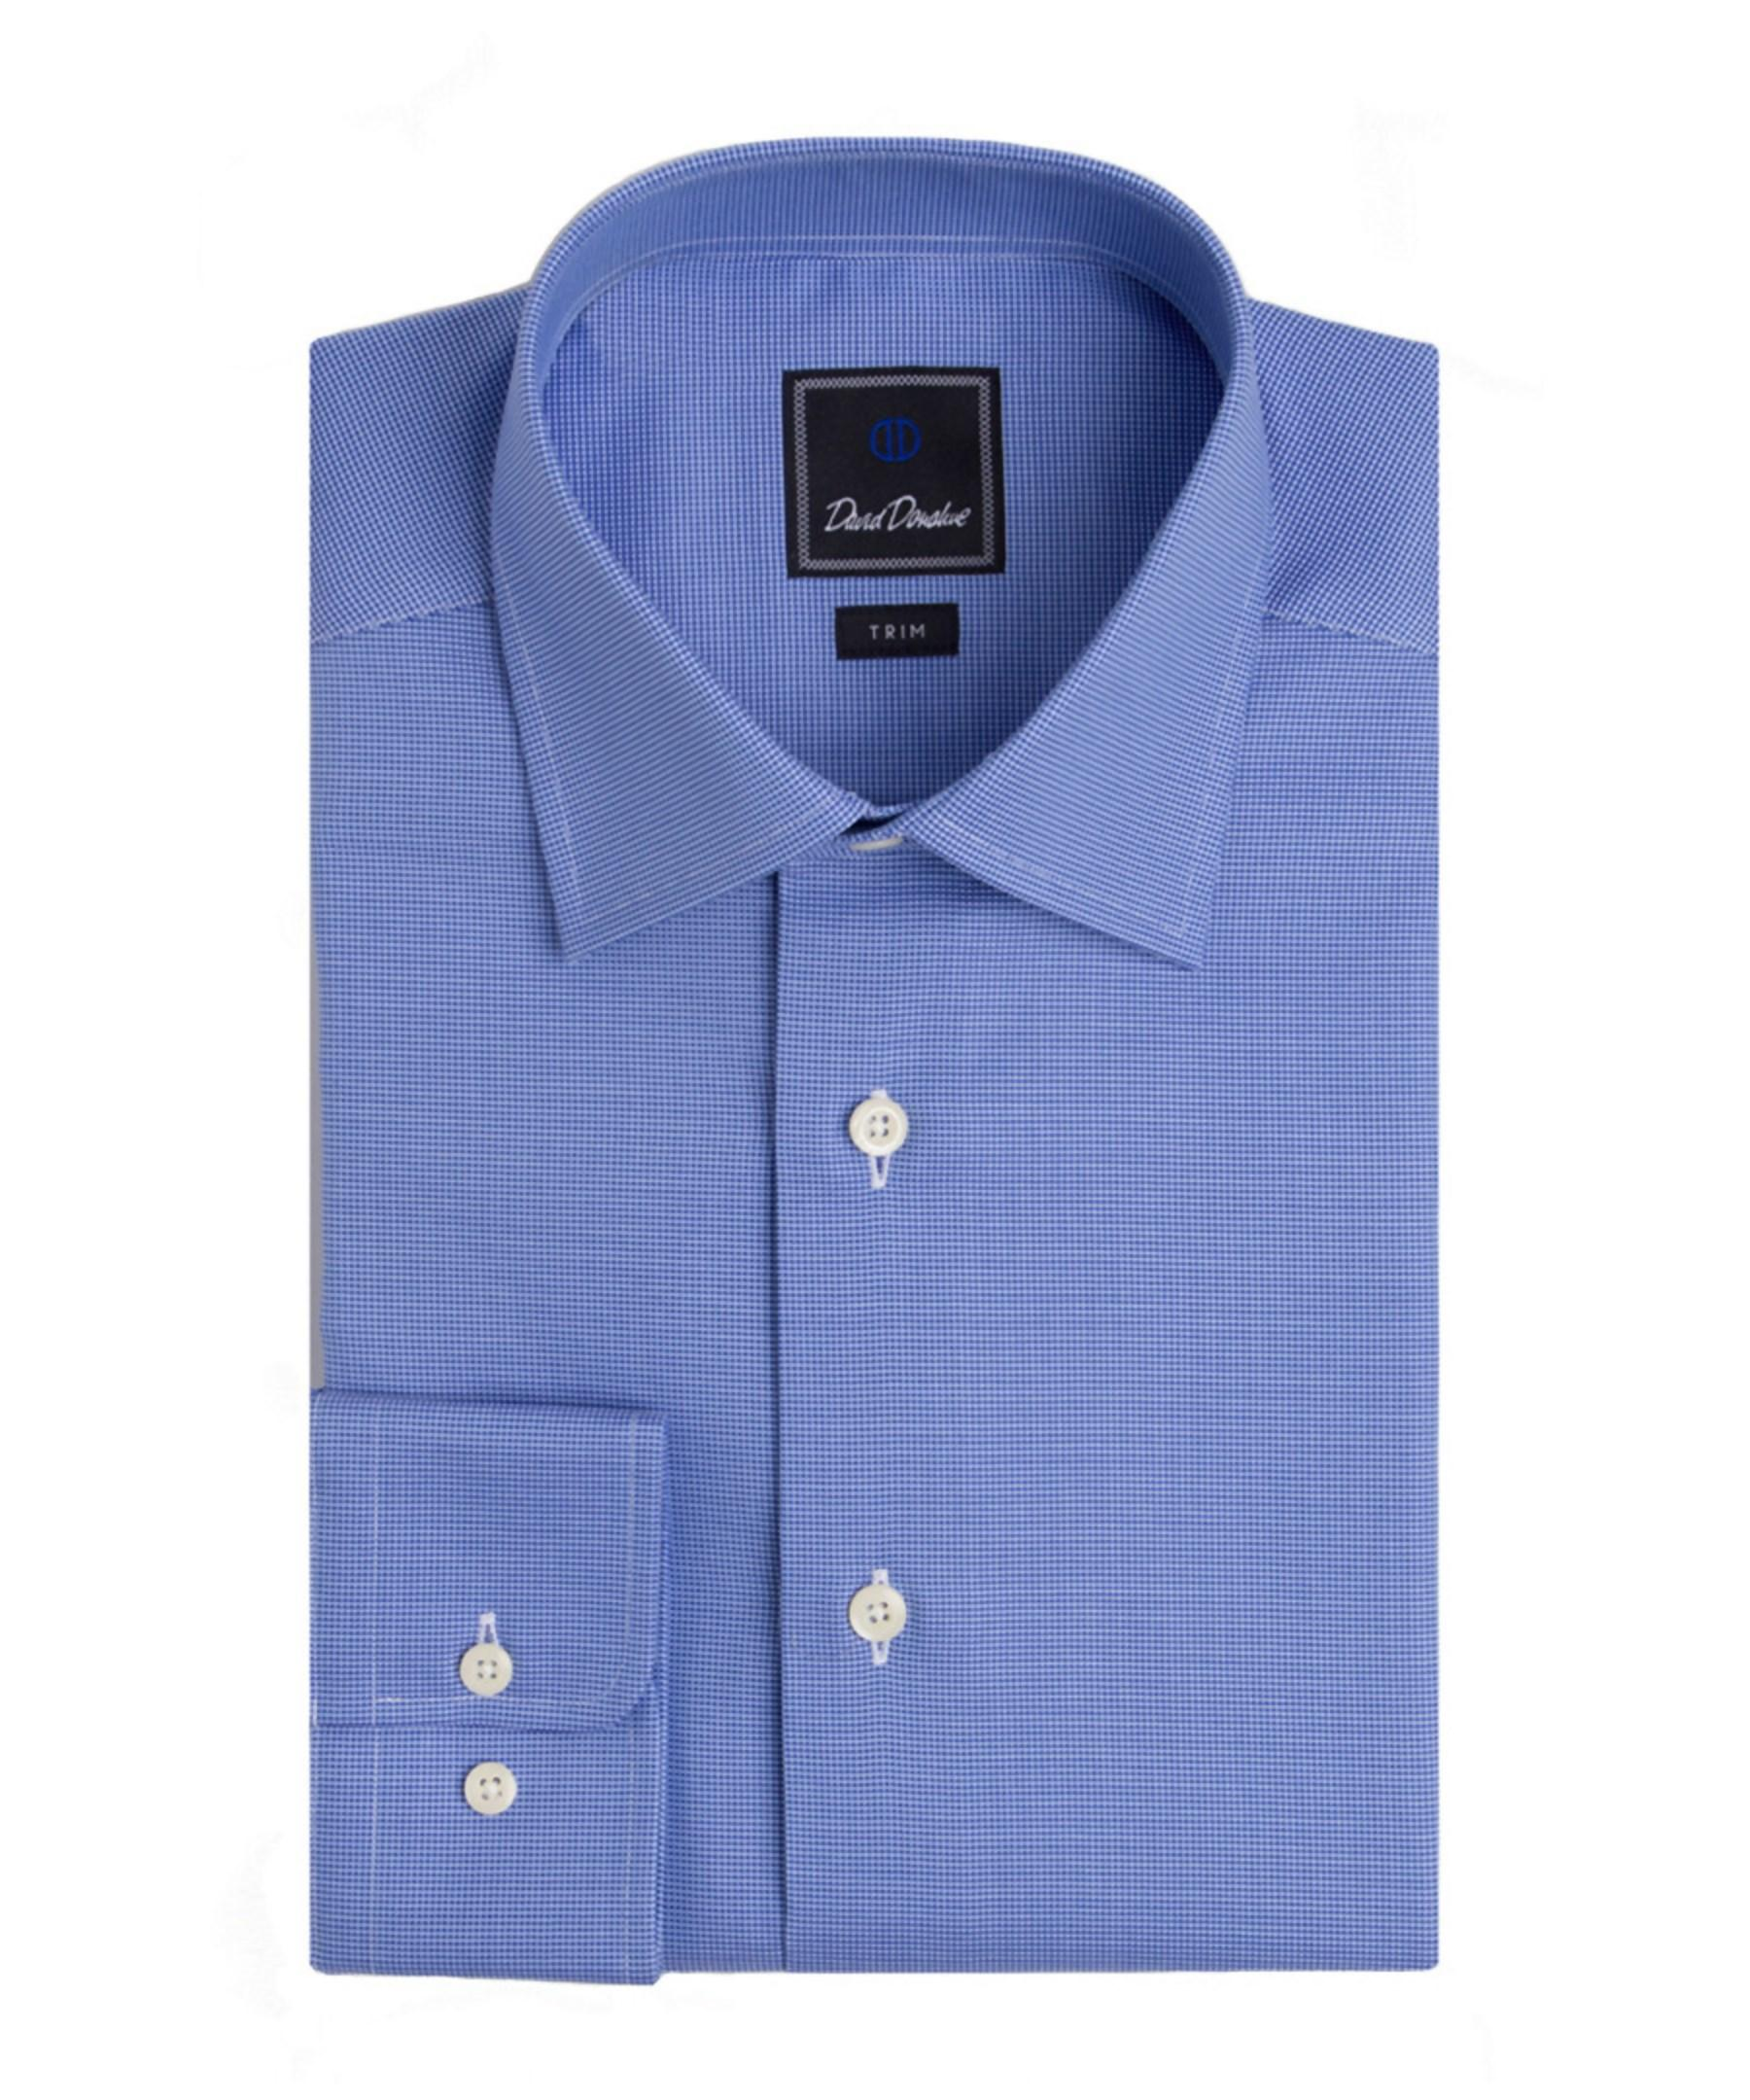 david donahue trim fit dress shirt in blue for men lyst